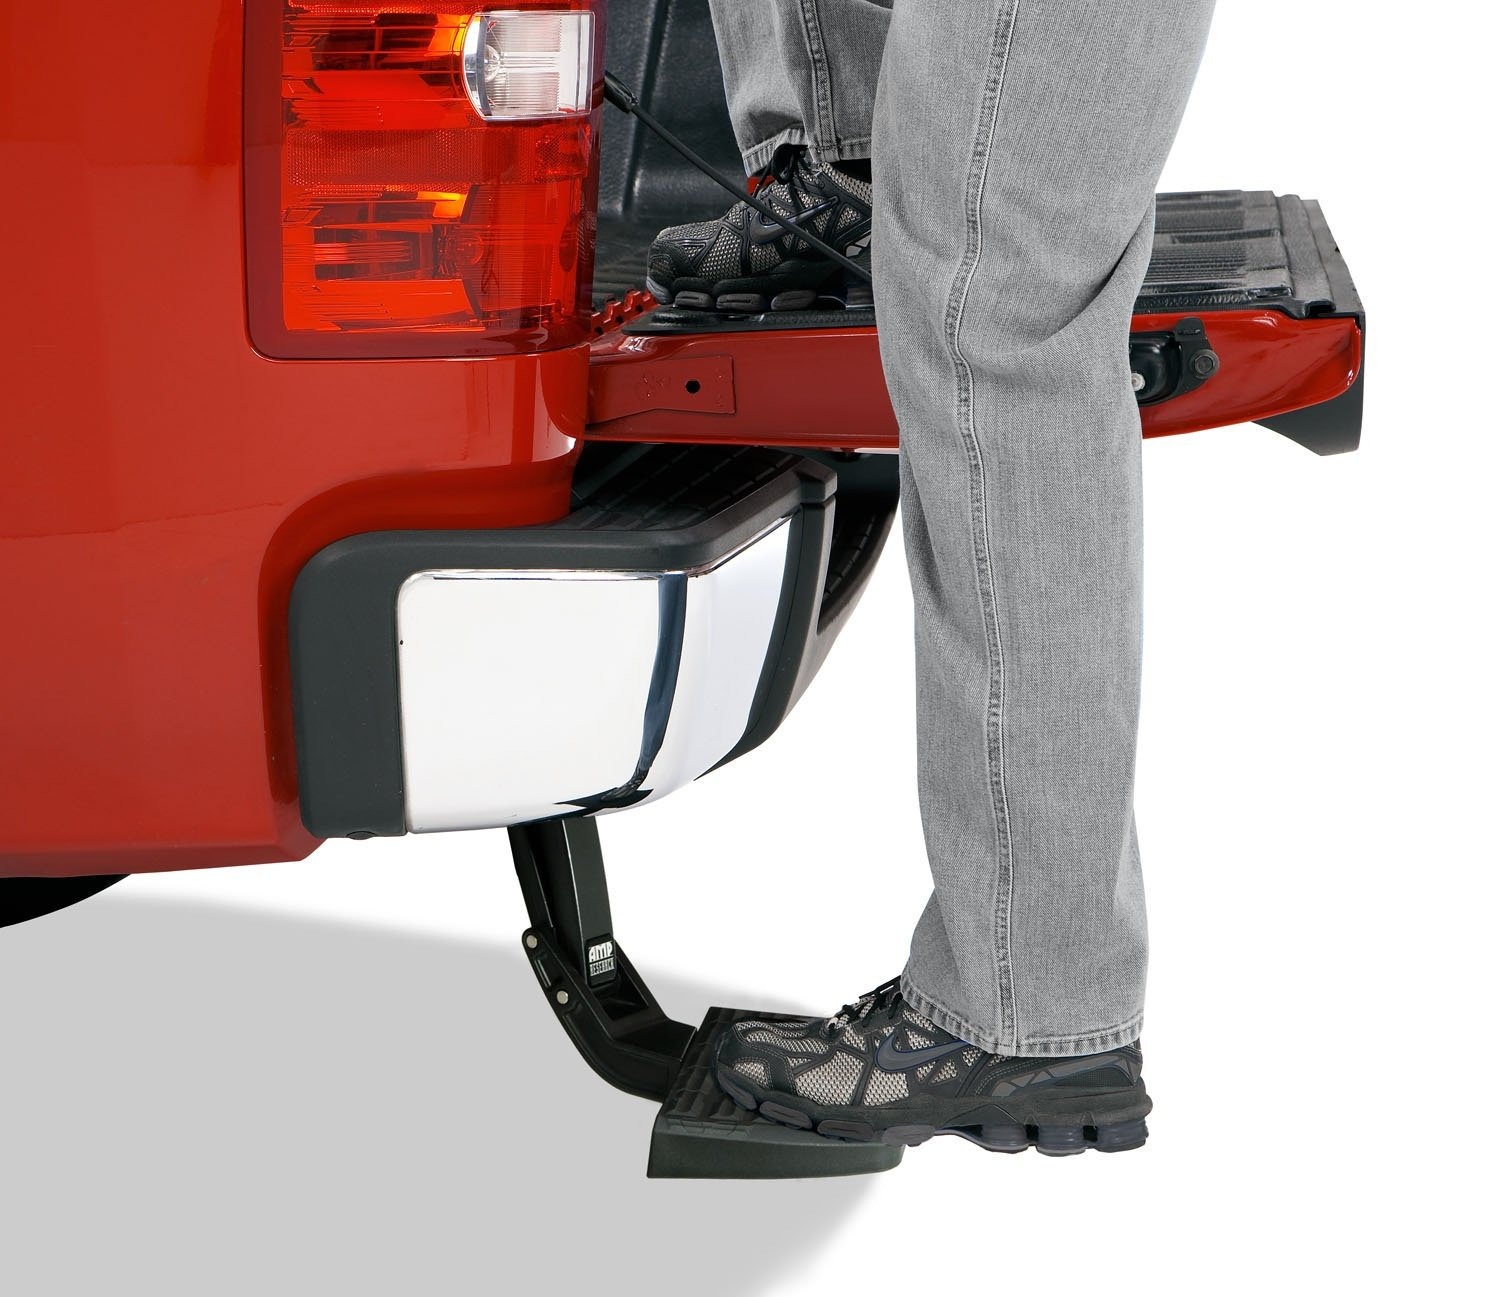 AMP Research 75304-01A BedStep Retractable Bumper Step for 2002-2008 Ram 1500, 2003-2009 Ram 2500/3500 by AMP Research